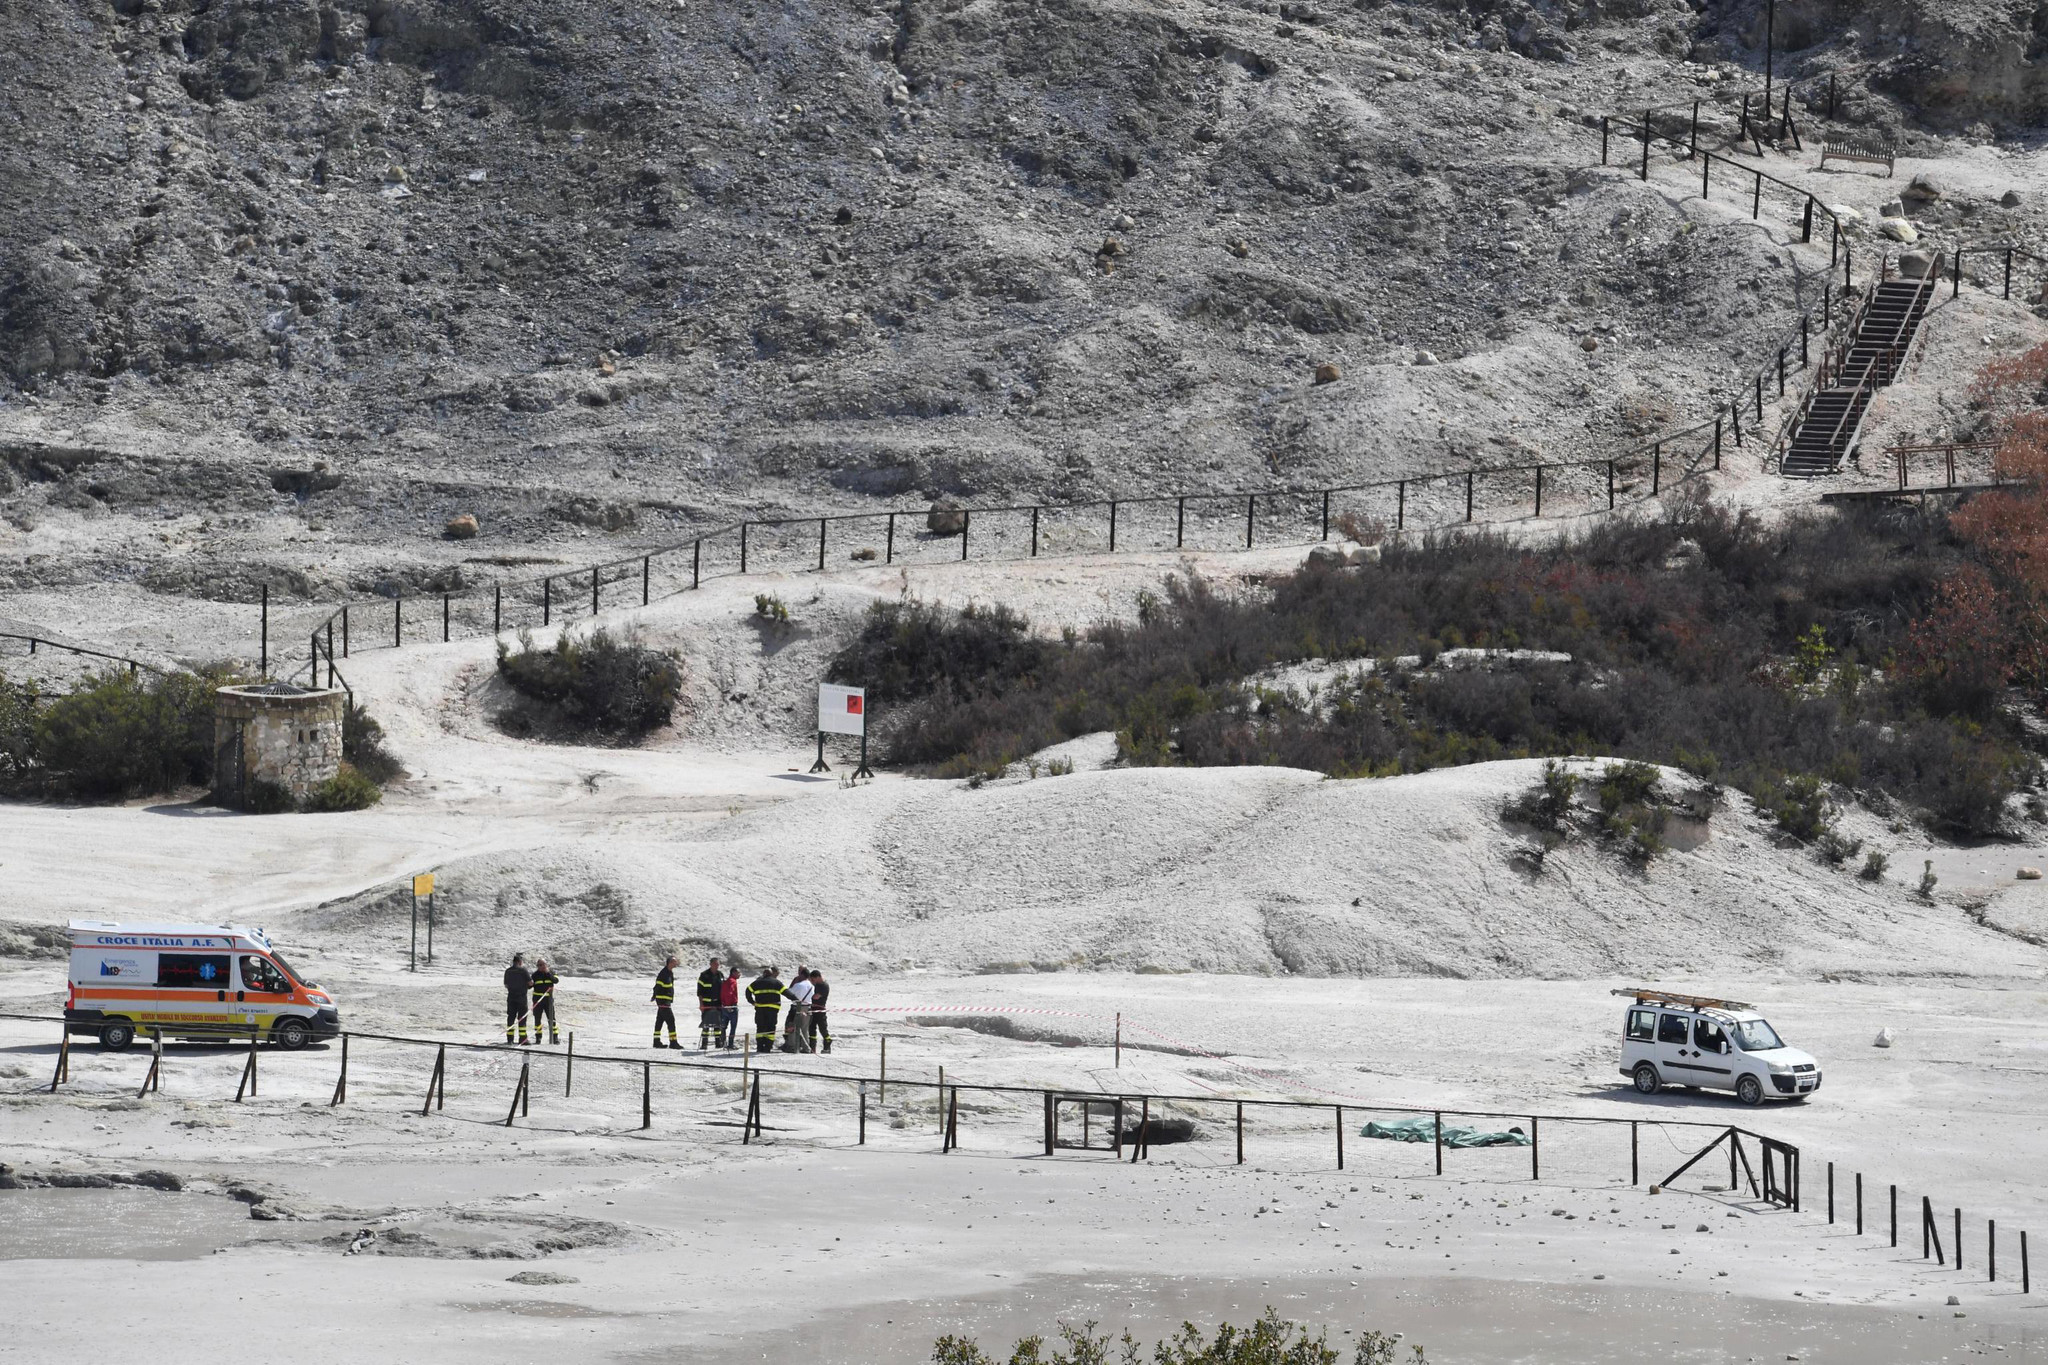 11-year-old boy, parents killed after boy entered off-limits area of Italian volcanic field